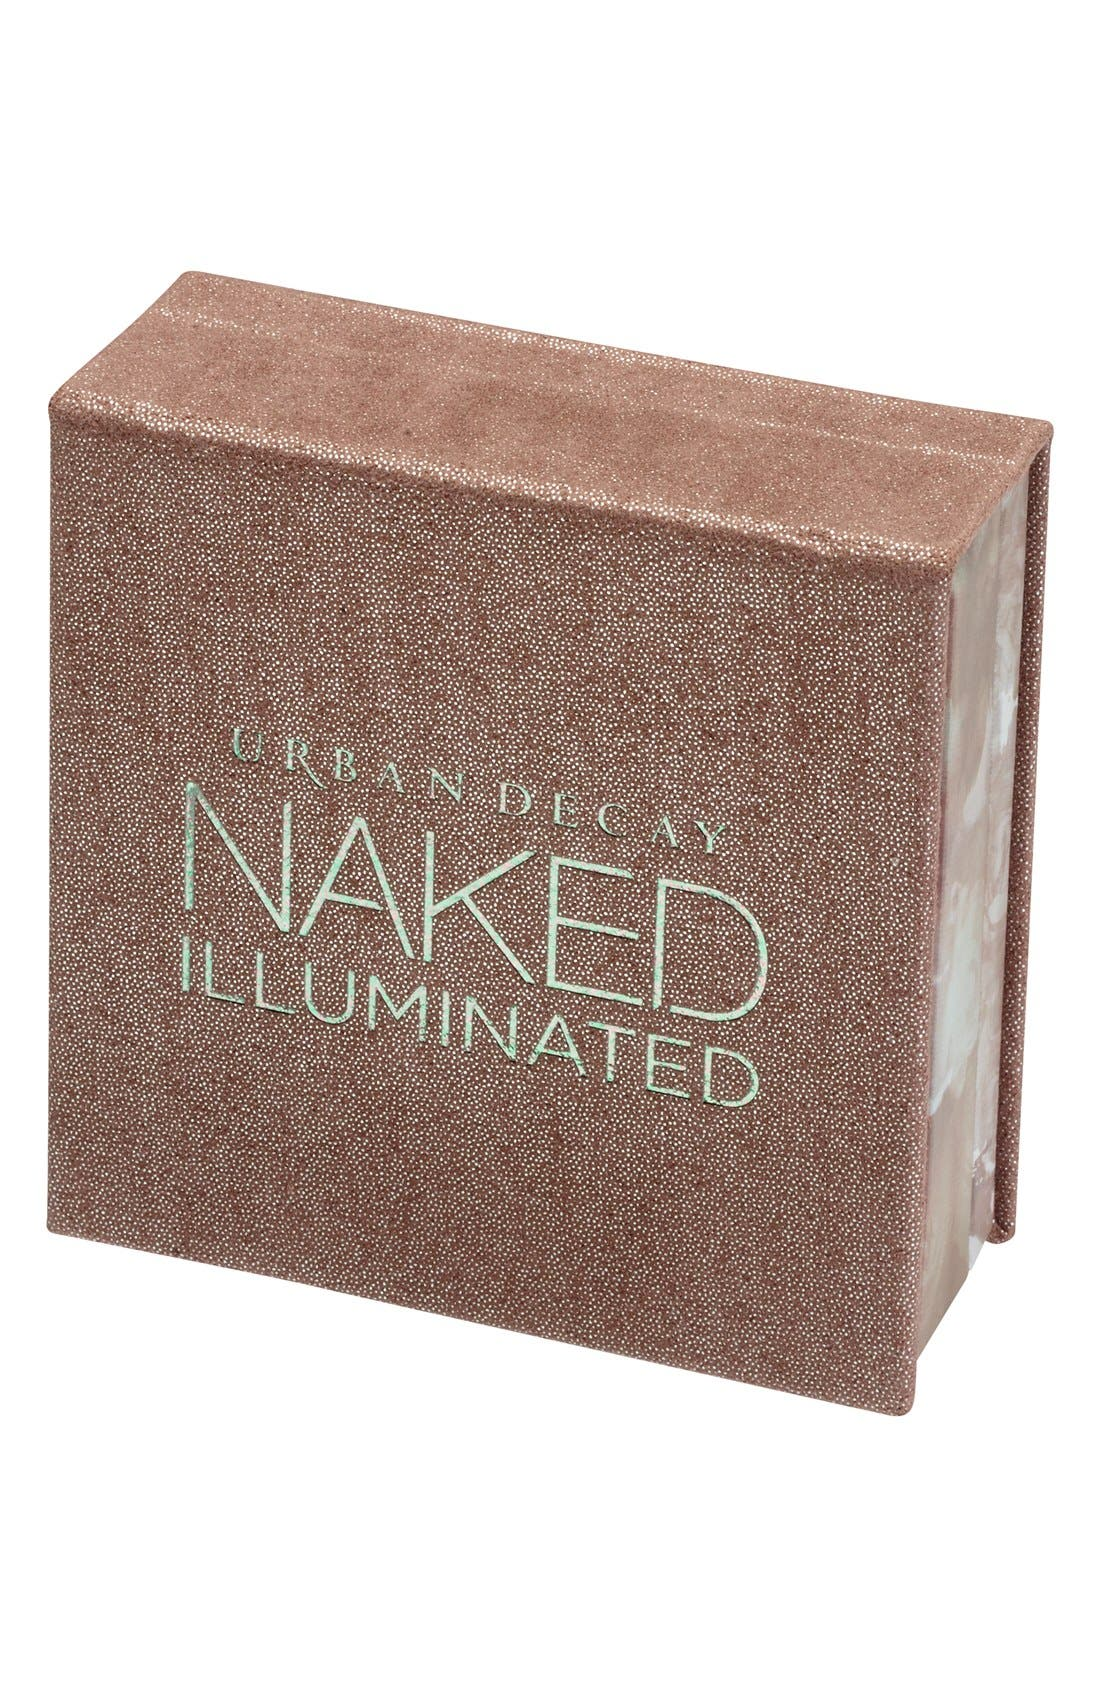 Urban Decay Naked Illuminated Shimmering Powder for Face & Body (Limited Edition)